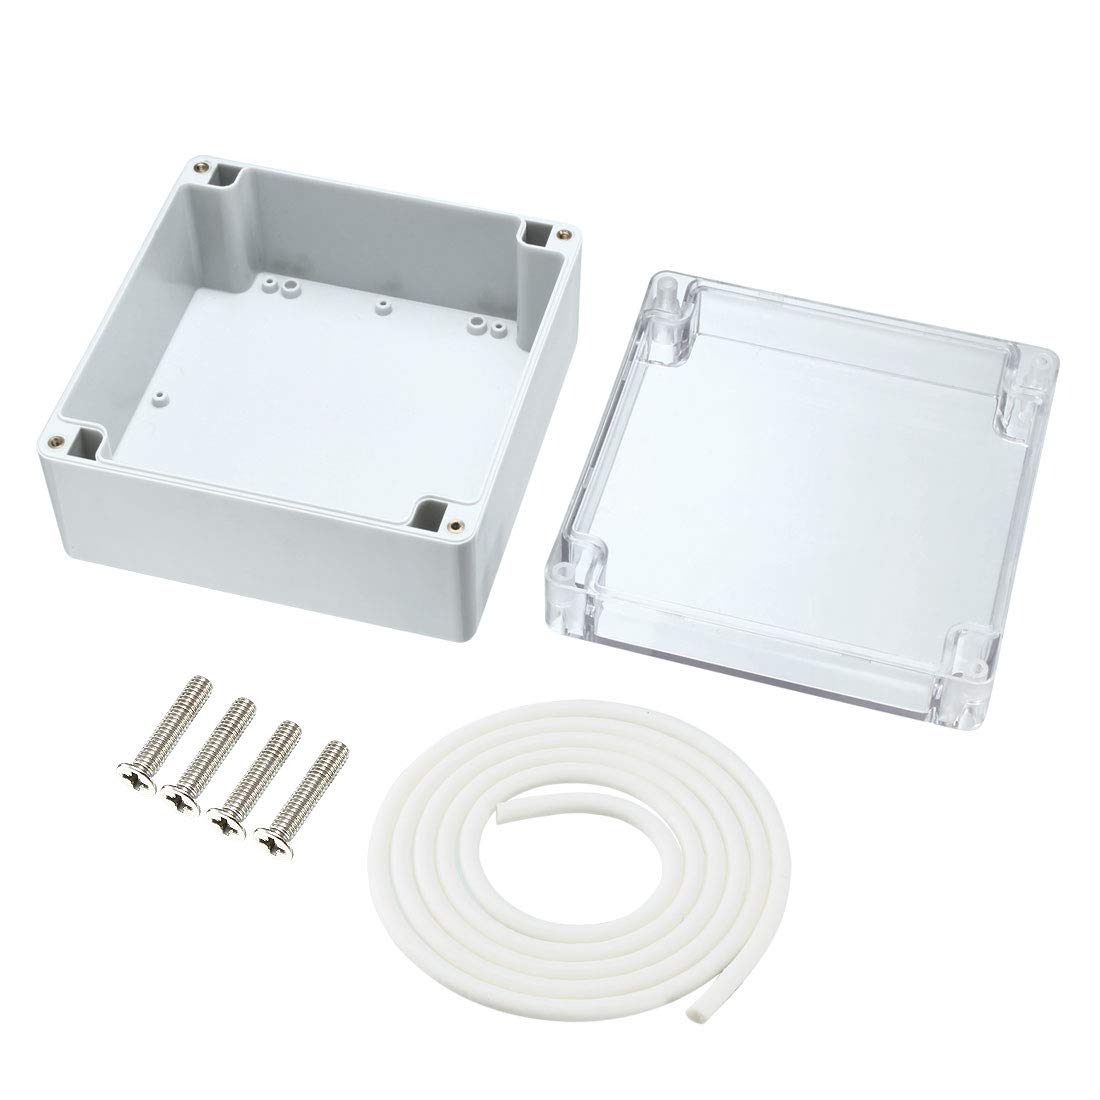 Junction Box IP65 Universal Project Enclosure sourcing map 3.94x2.68x1.97 100mmx68mmx50mm